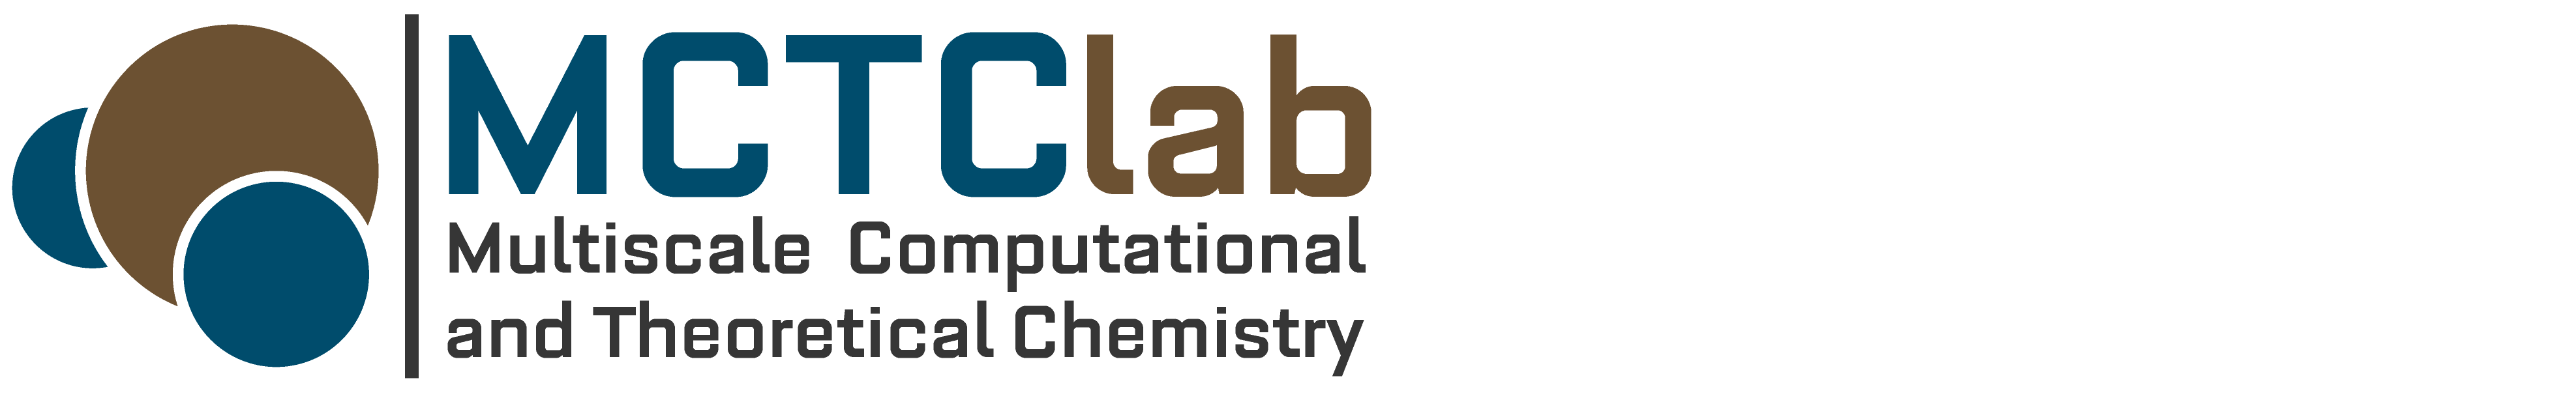 Multiscale Computational and Theoretical Chemistry